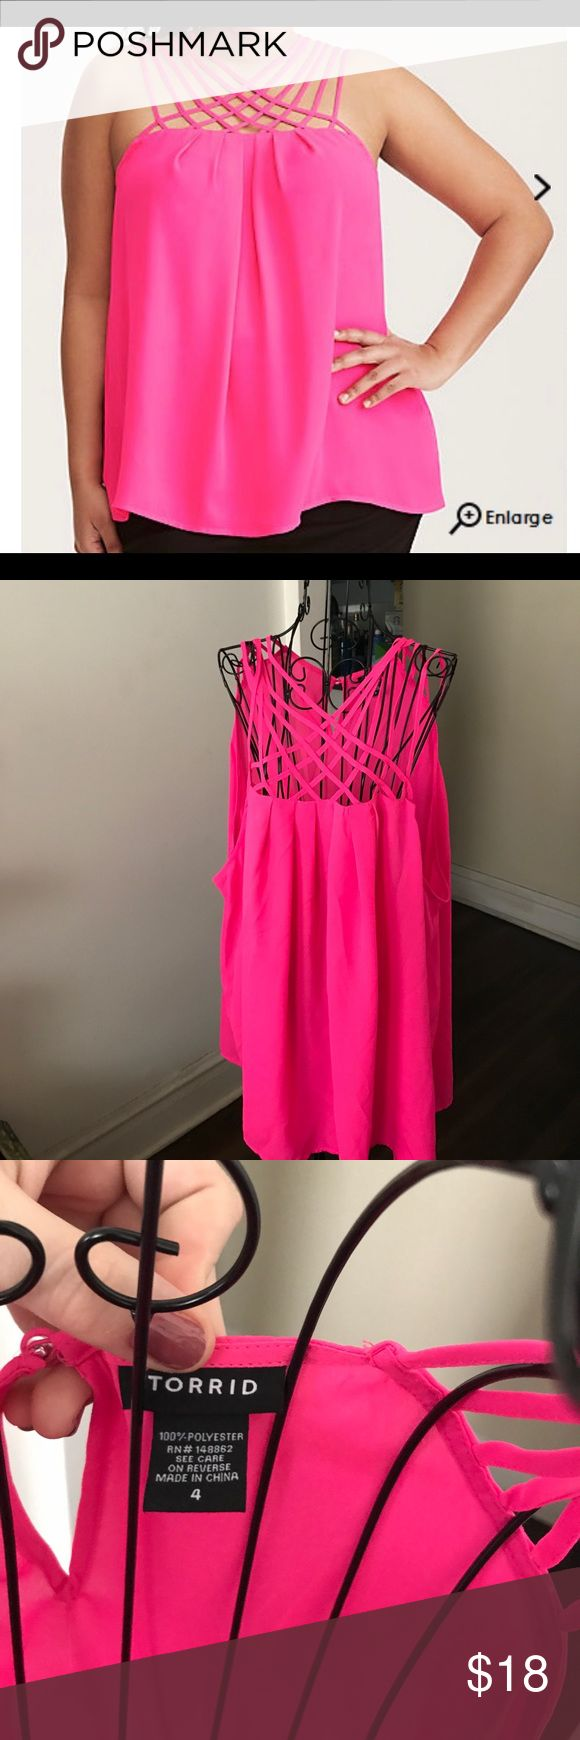 Torrid neon pink strappy neck  top, size 4X New without tags. This is a lightweight georgette top with a strappy neck detail and a button detail in the back. It is a beautiful neon pink color. This is a Torrid size 4; please see the attached size chart. I'm motivated to sell, so if you're interested please make me an offer. torrid Tops